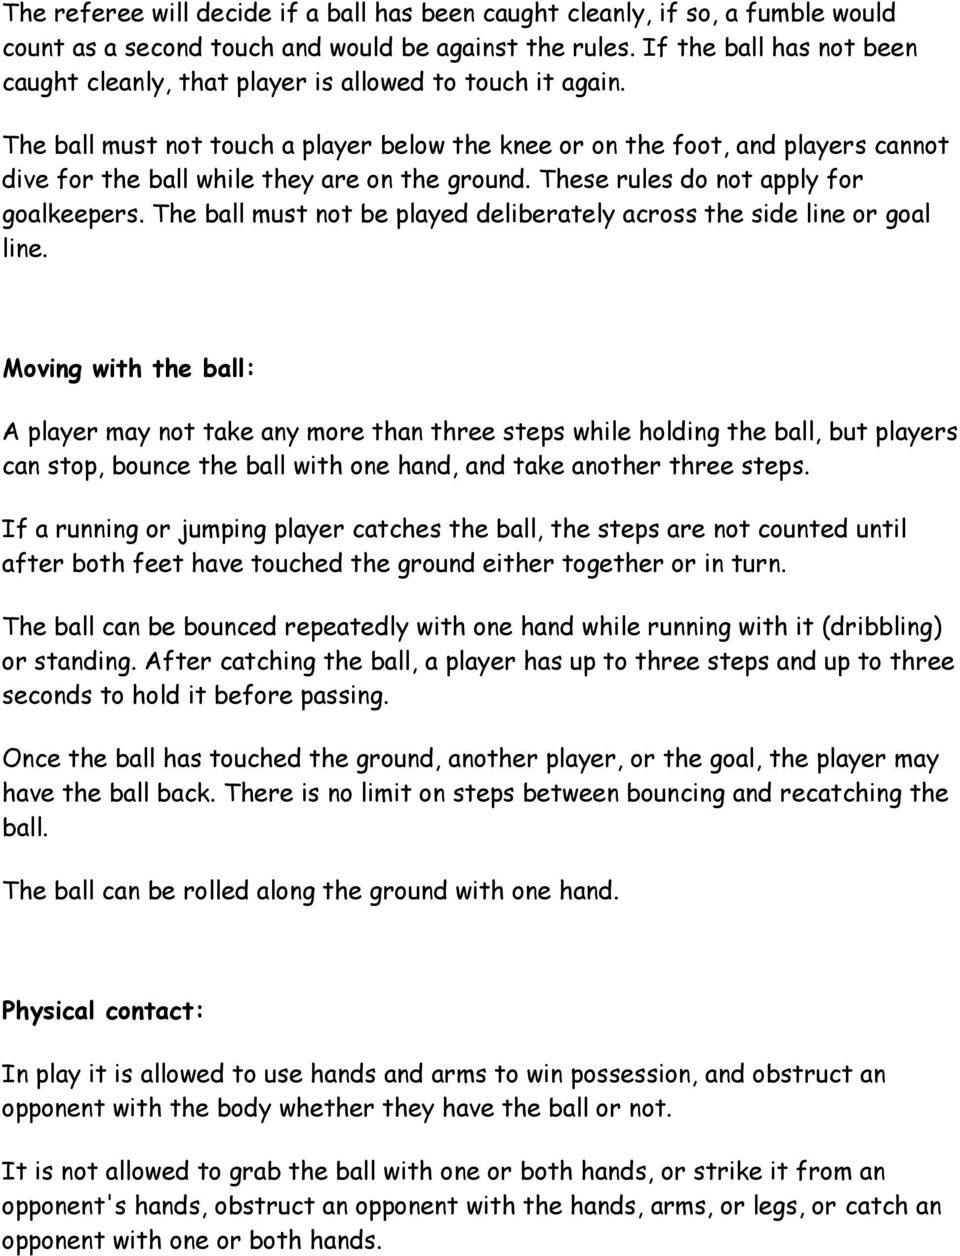 The ball must not touch a player below the knee or on the foot, and players cannot dive for the ball while they are on the ground. These rules do not apply for goalkeepers.